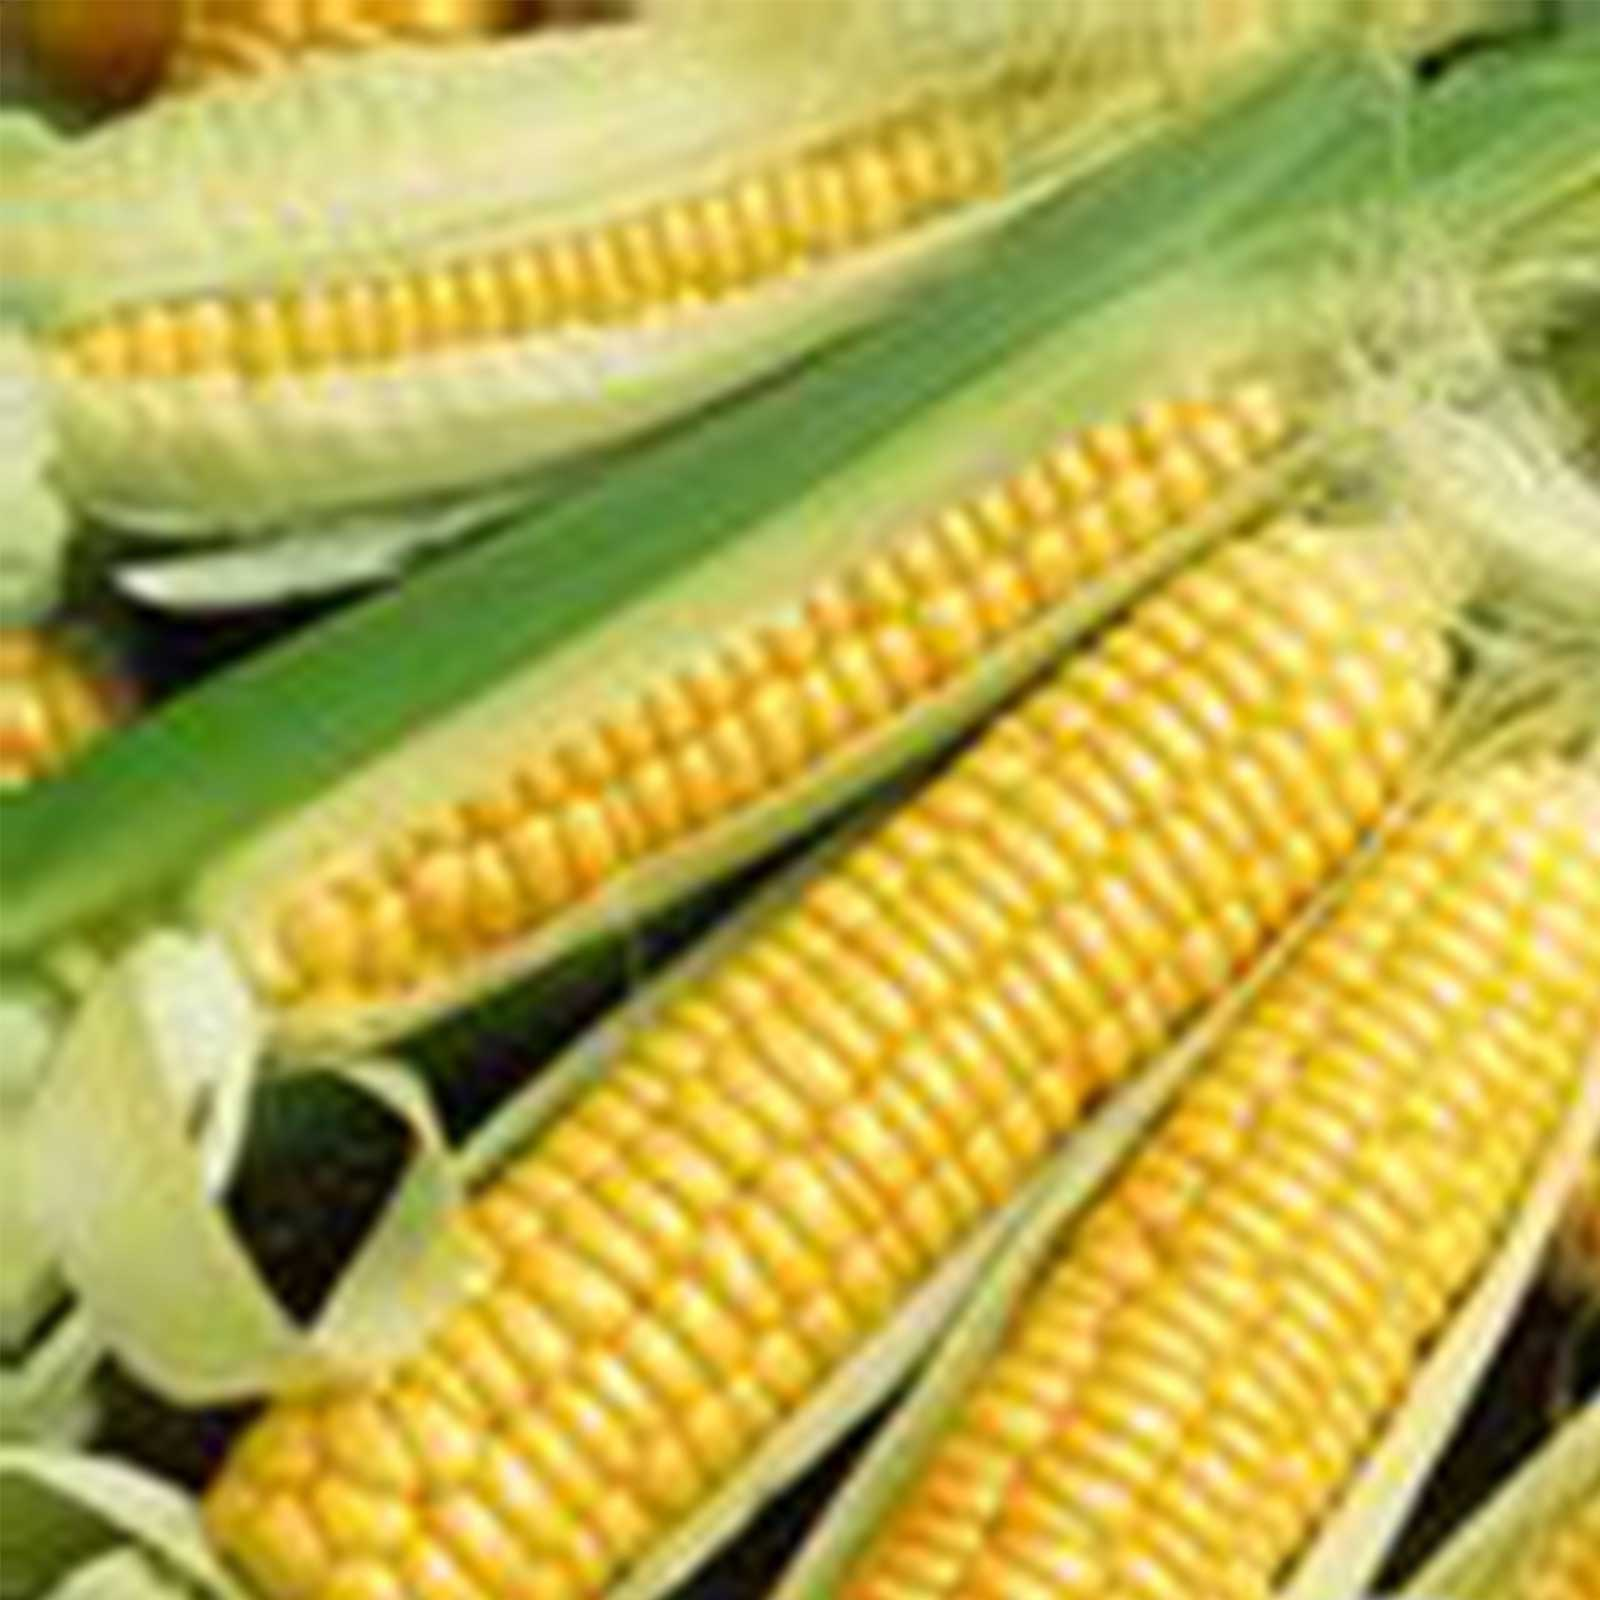 Sweet corn varieties days to maturity